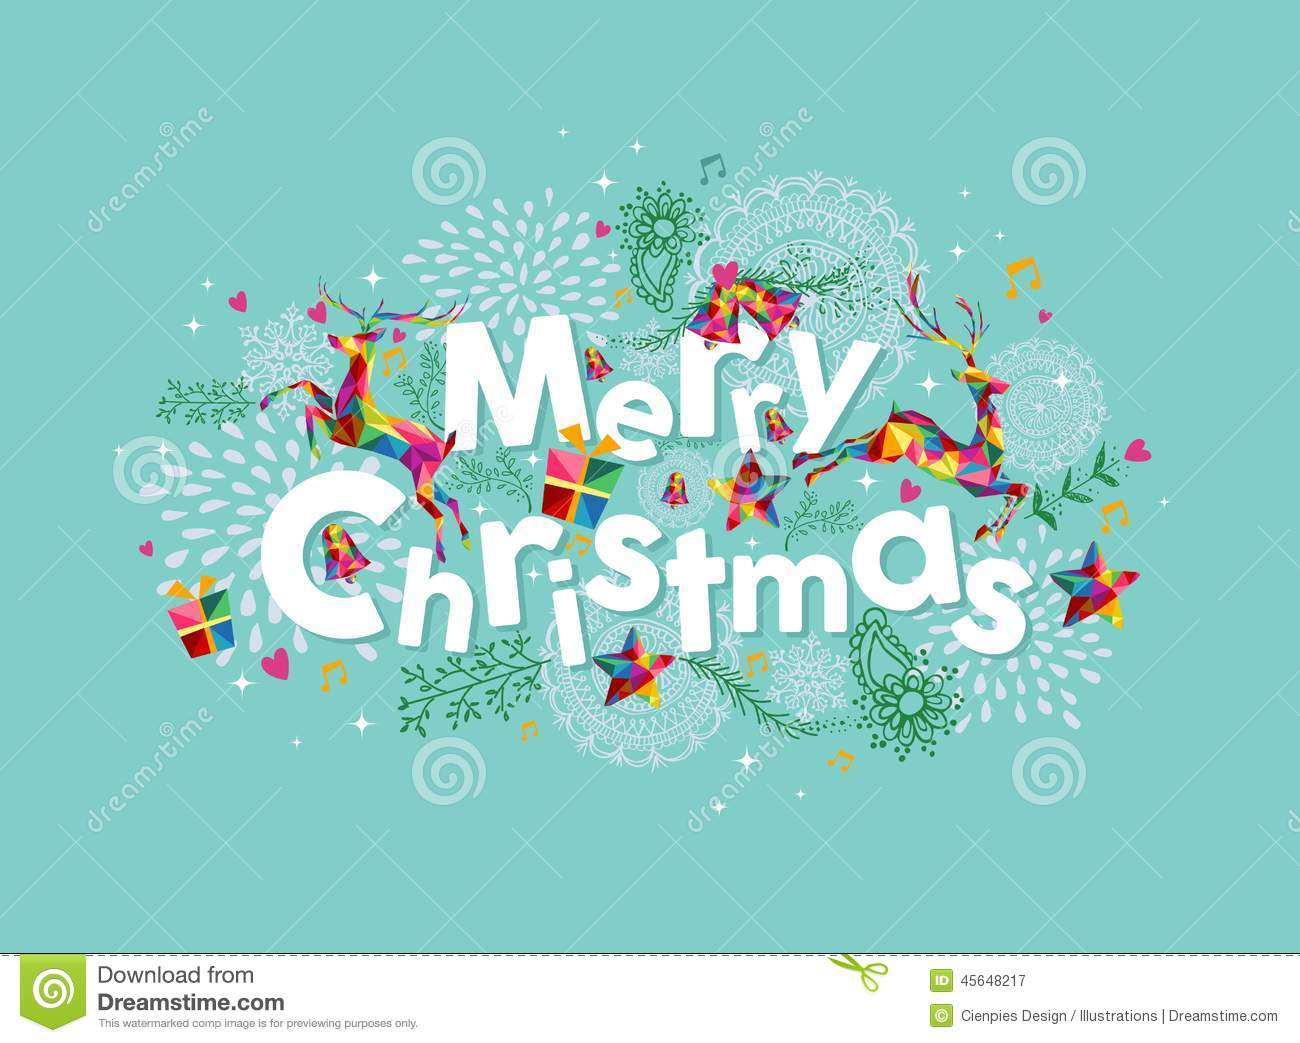 Merry christmas contemporary greeting card stock vector merry christmas contemporary greeting card kristyandbryce Choice Image